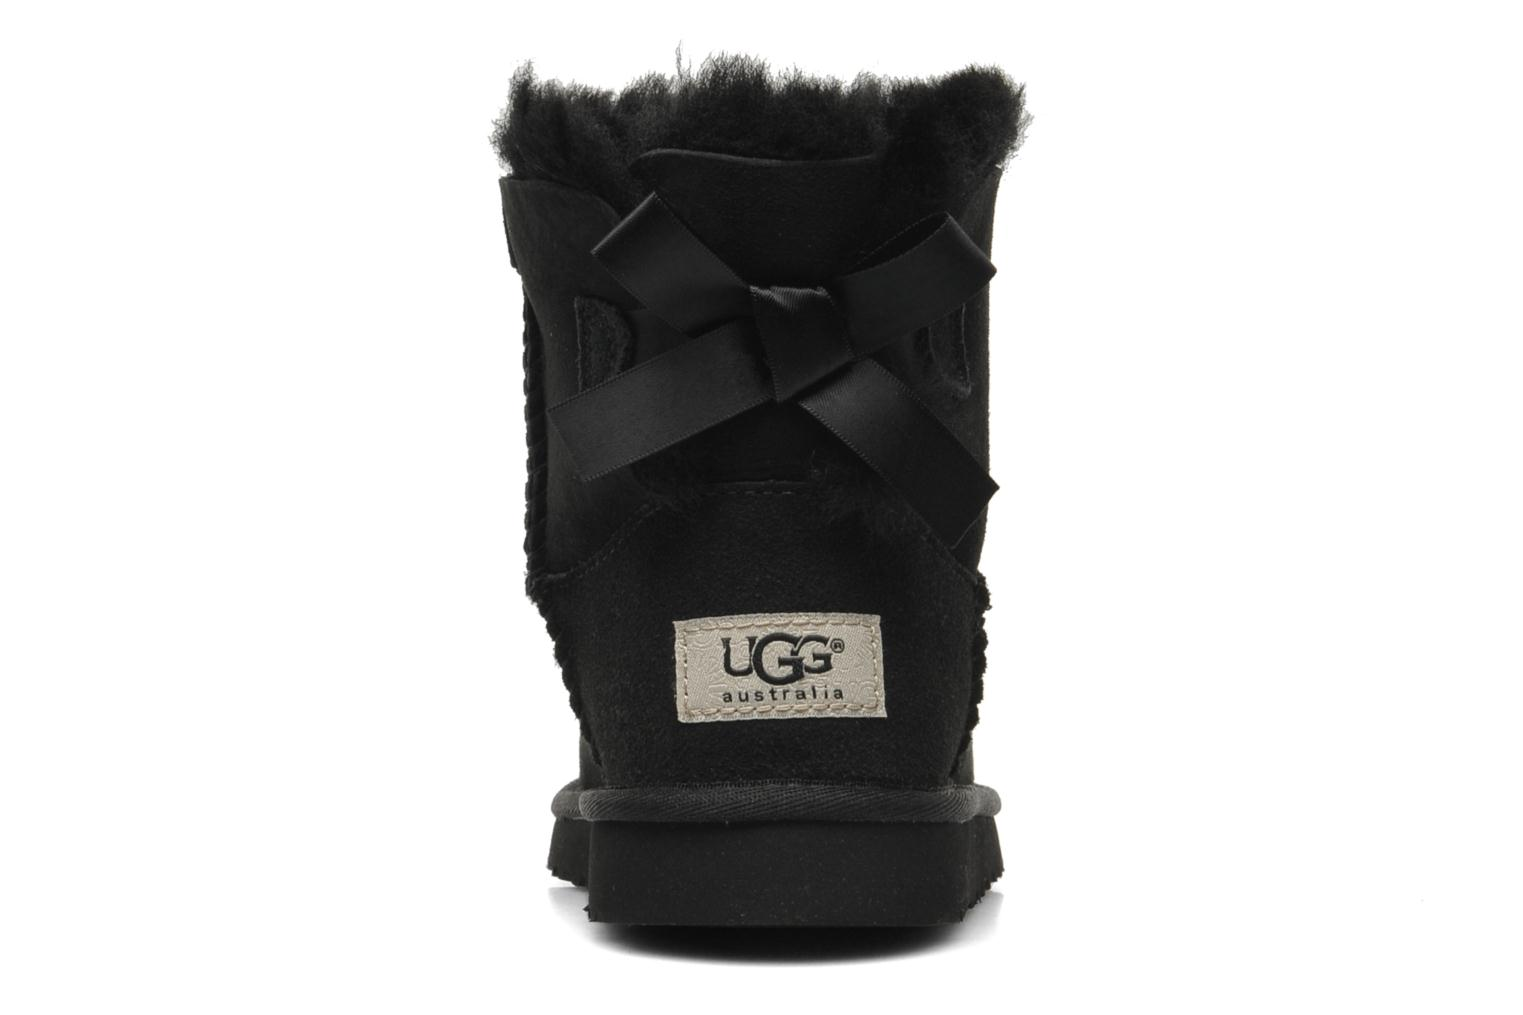 ugg boots bailey bow mini schwarz santa barbara institute for consciousness studies. Black Bedroom Furniture Sets. Home Design Ideas